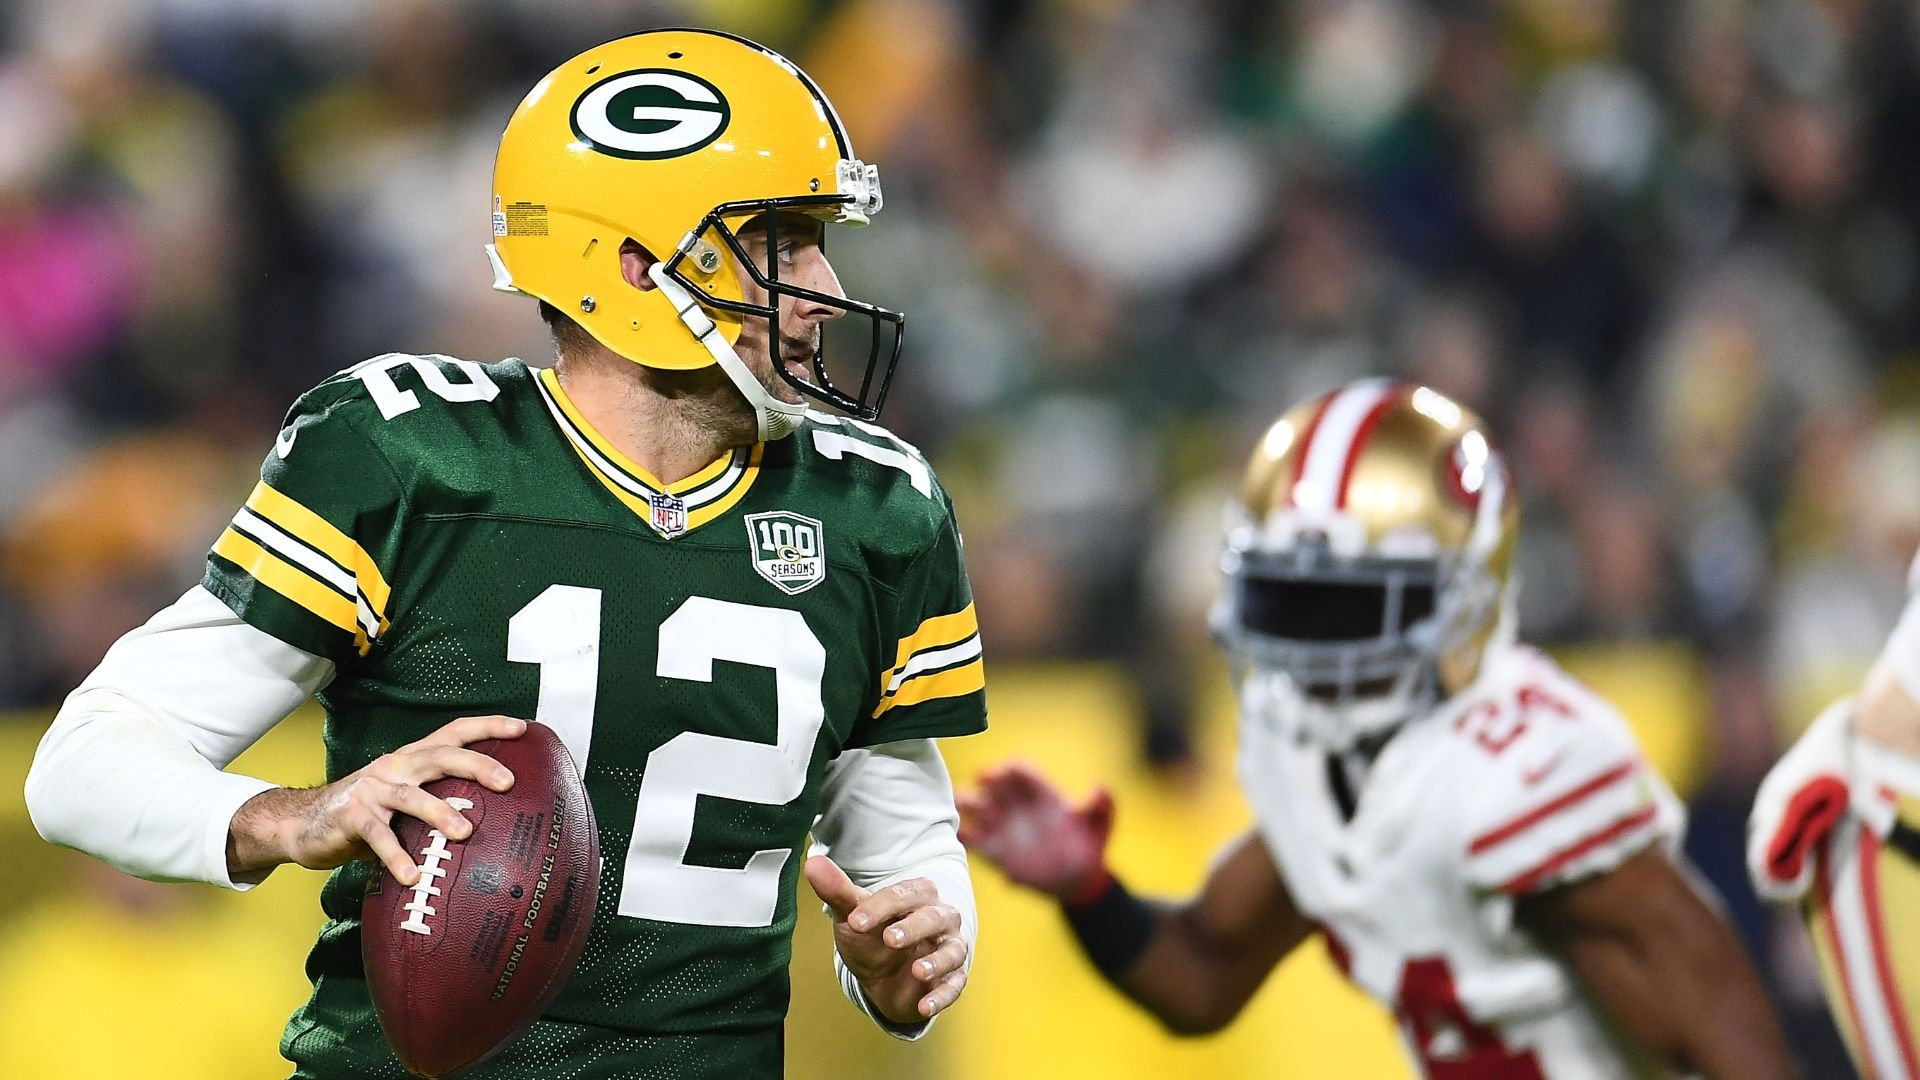 https://secure.espncdn.com/combiner/i?img=/media/motion/2018/1015/dm_181015_NFL_PACKERS_RODGERS_FINAL_DRIVE/dm_181015_NFL_PACKERS_RODGERS_FINAL_DRIVE.jpg